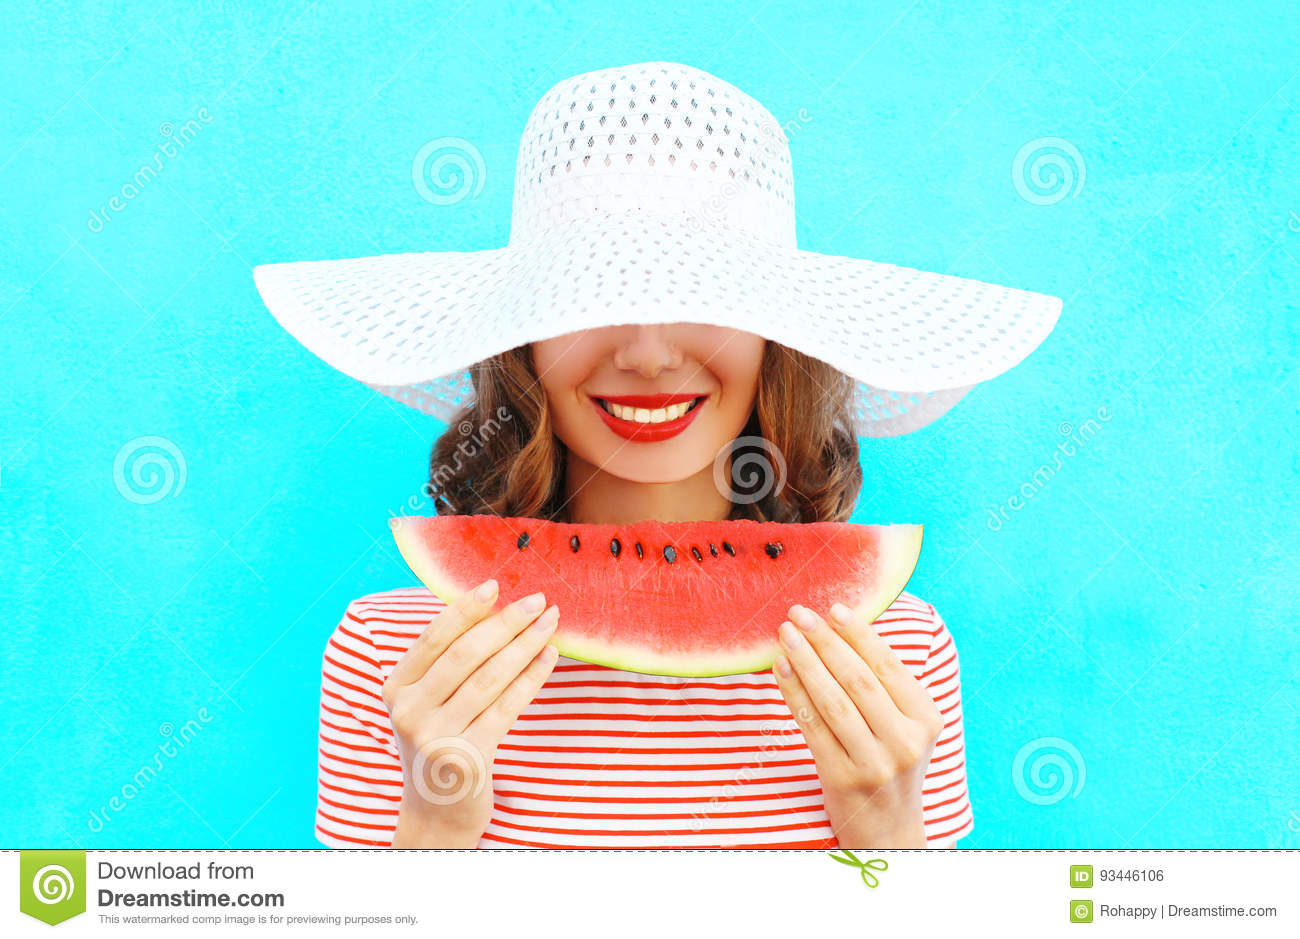 Fashion portrait happy smiling young woman is holding a slice of watermelon in a straw hat